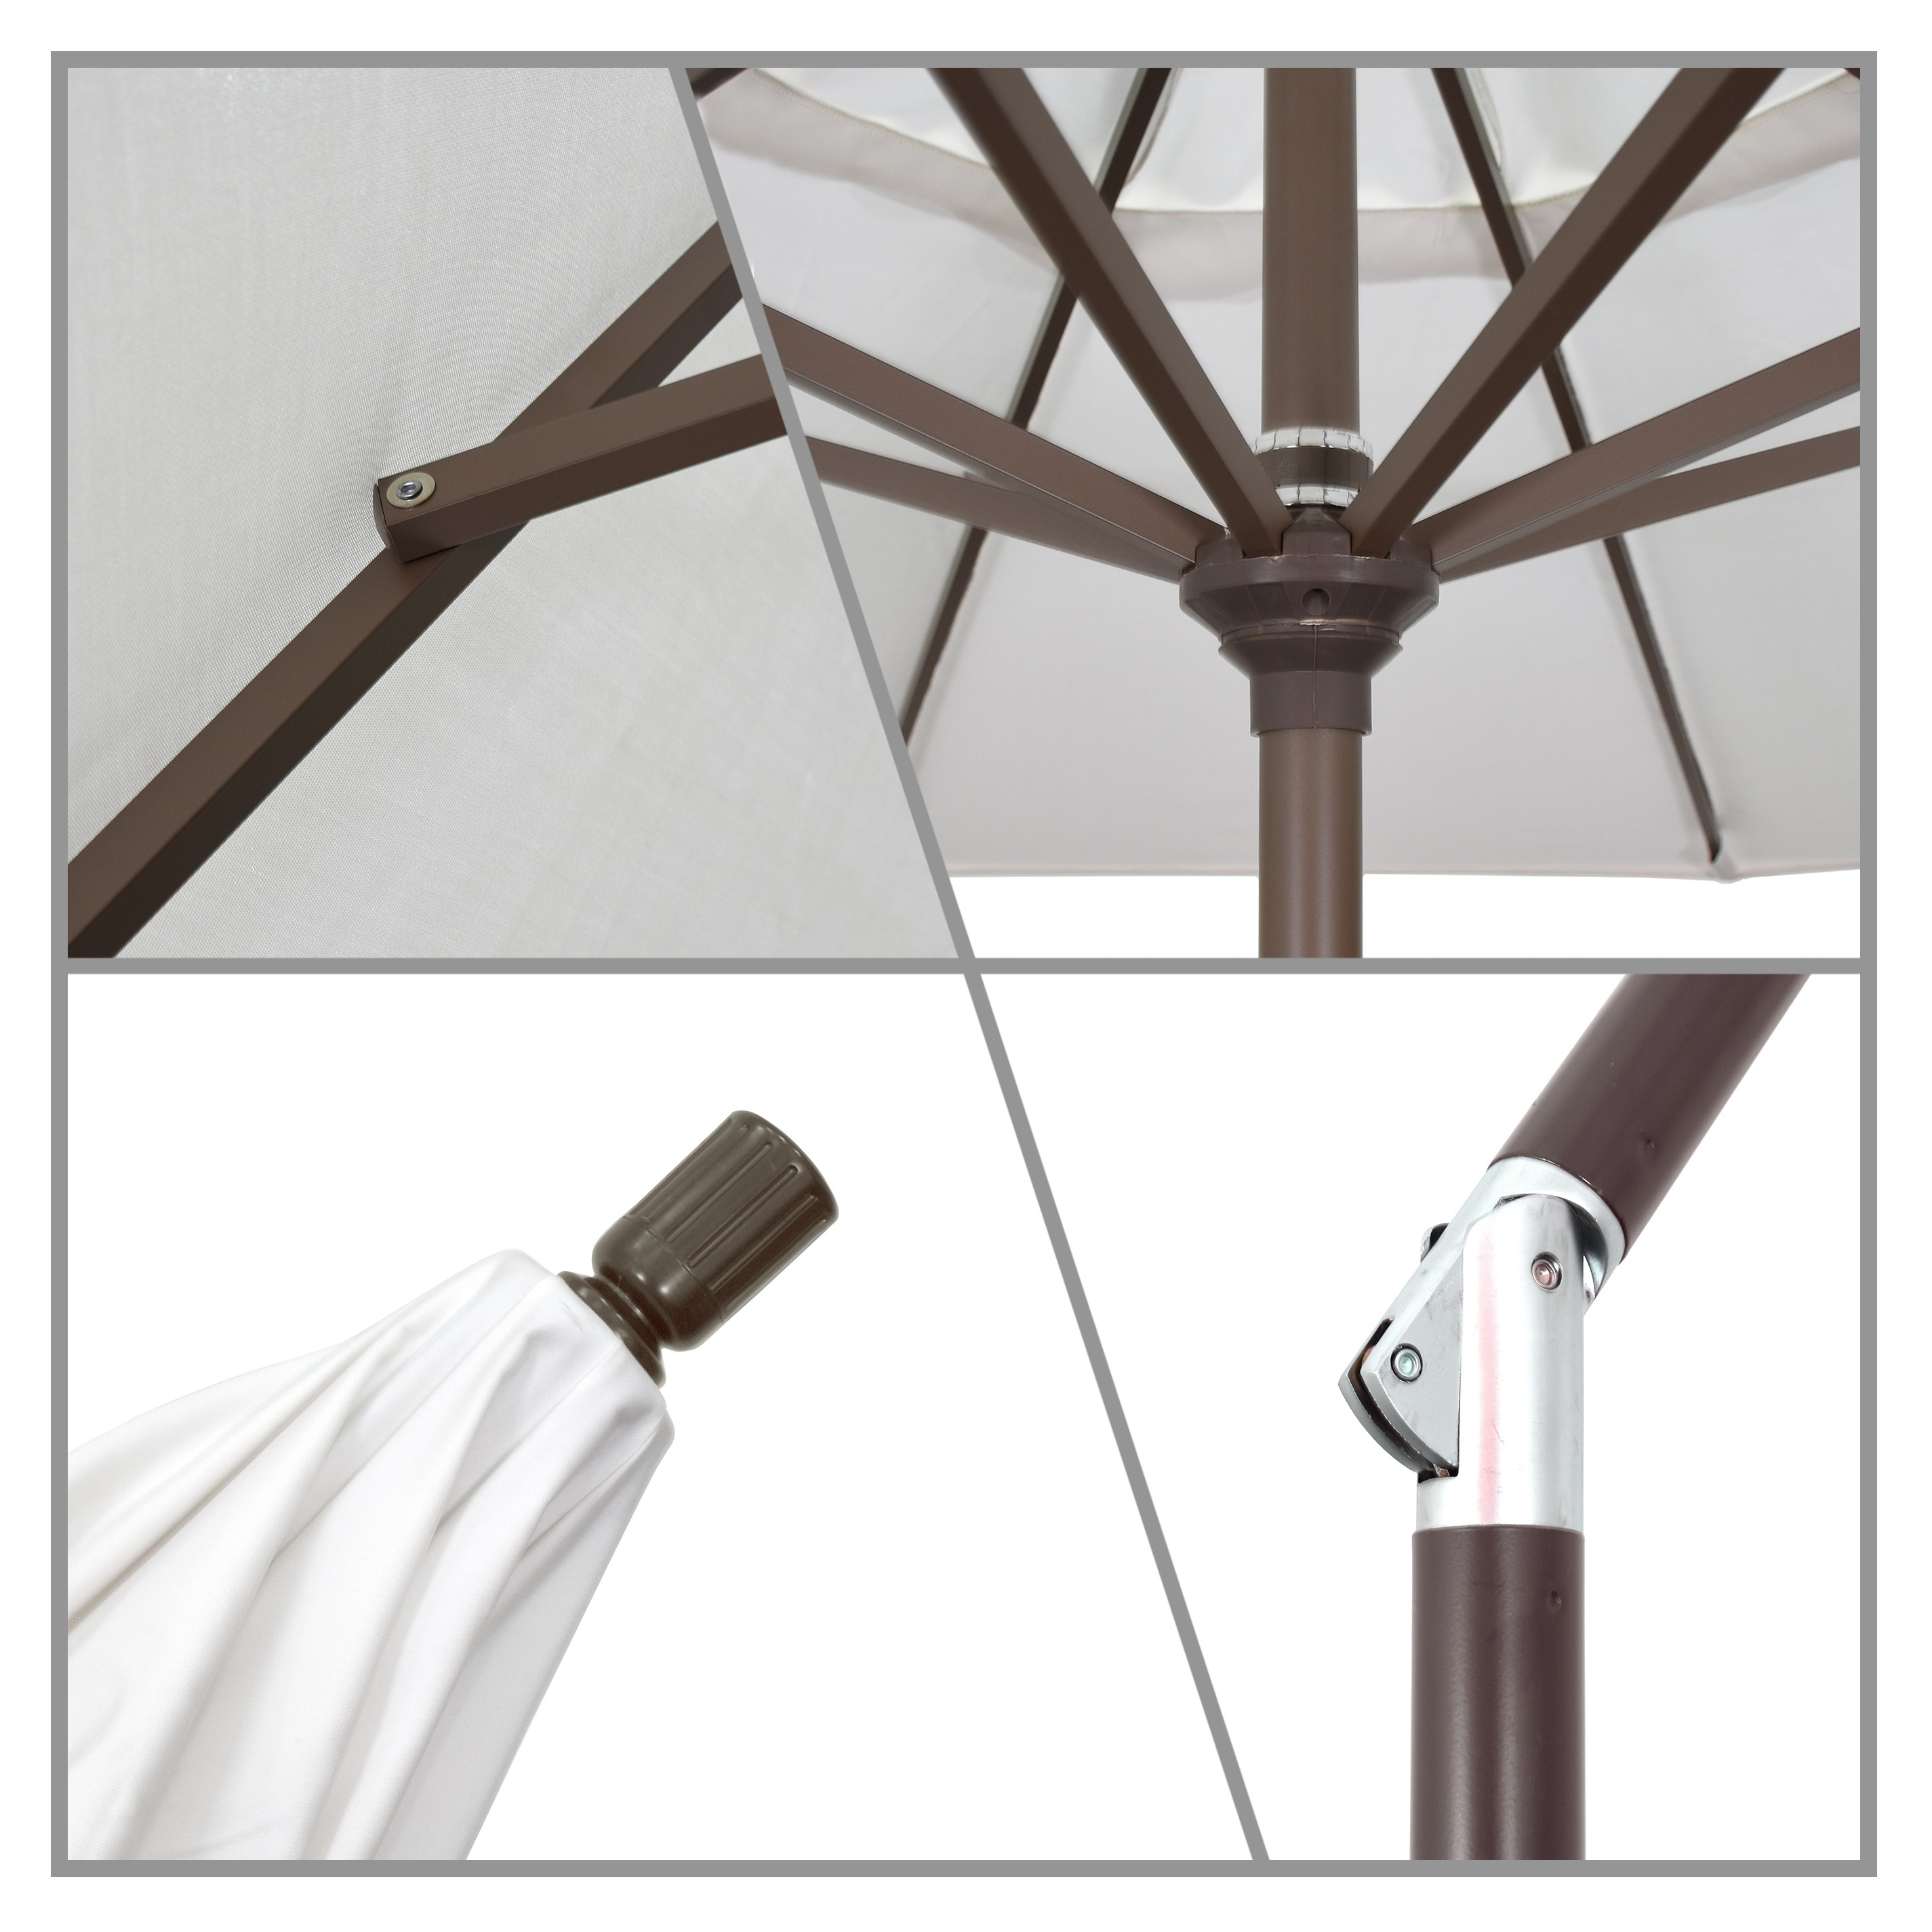 9' Market Style Outdoor Umbrella with Wind Vent Canvas Parrot